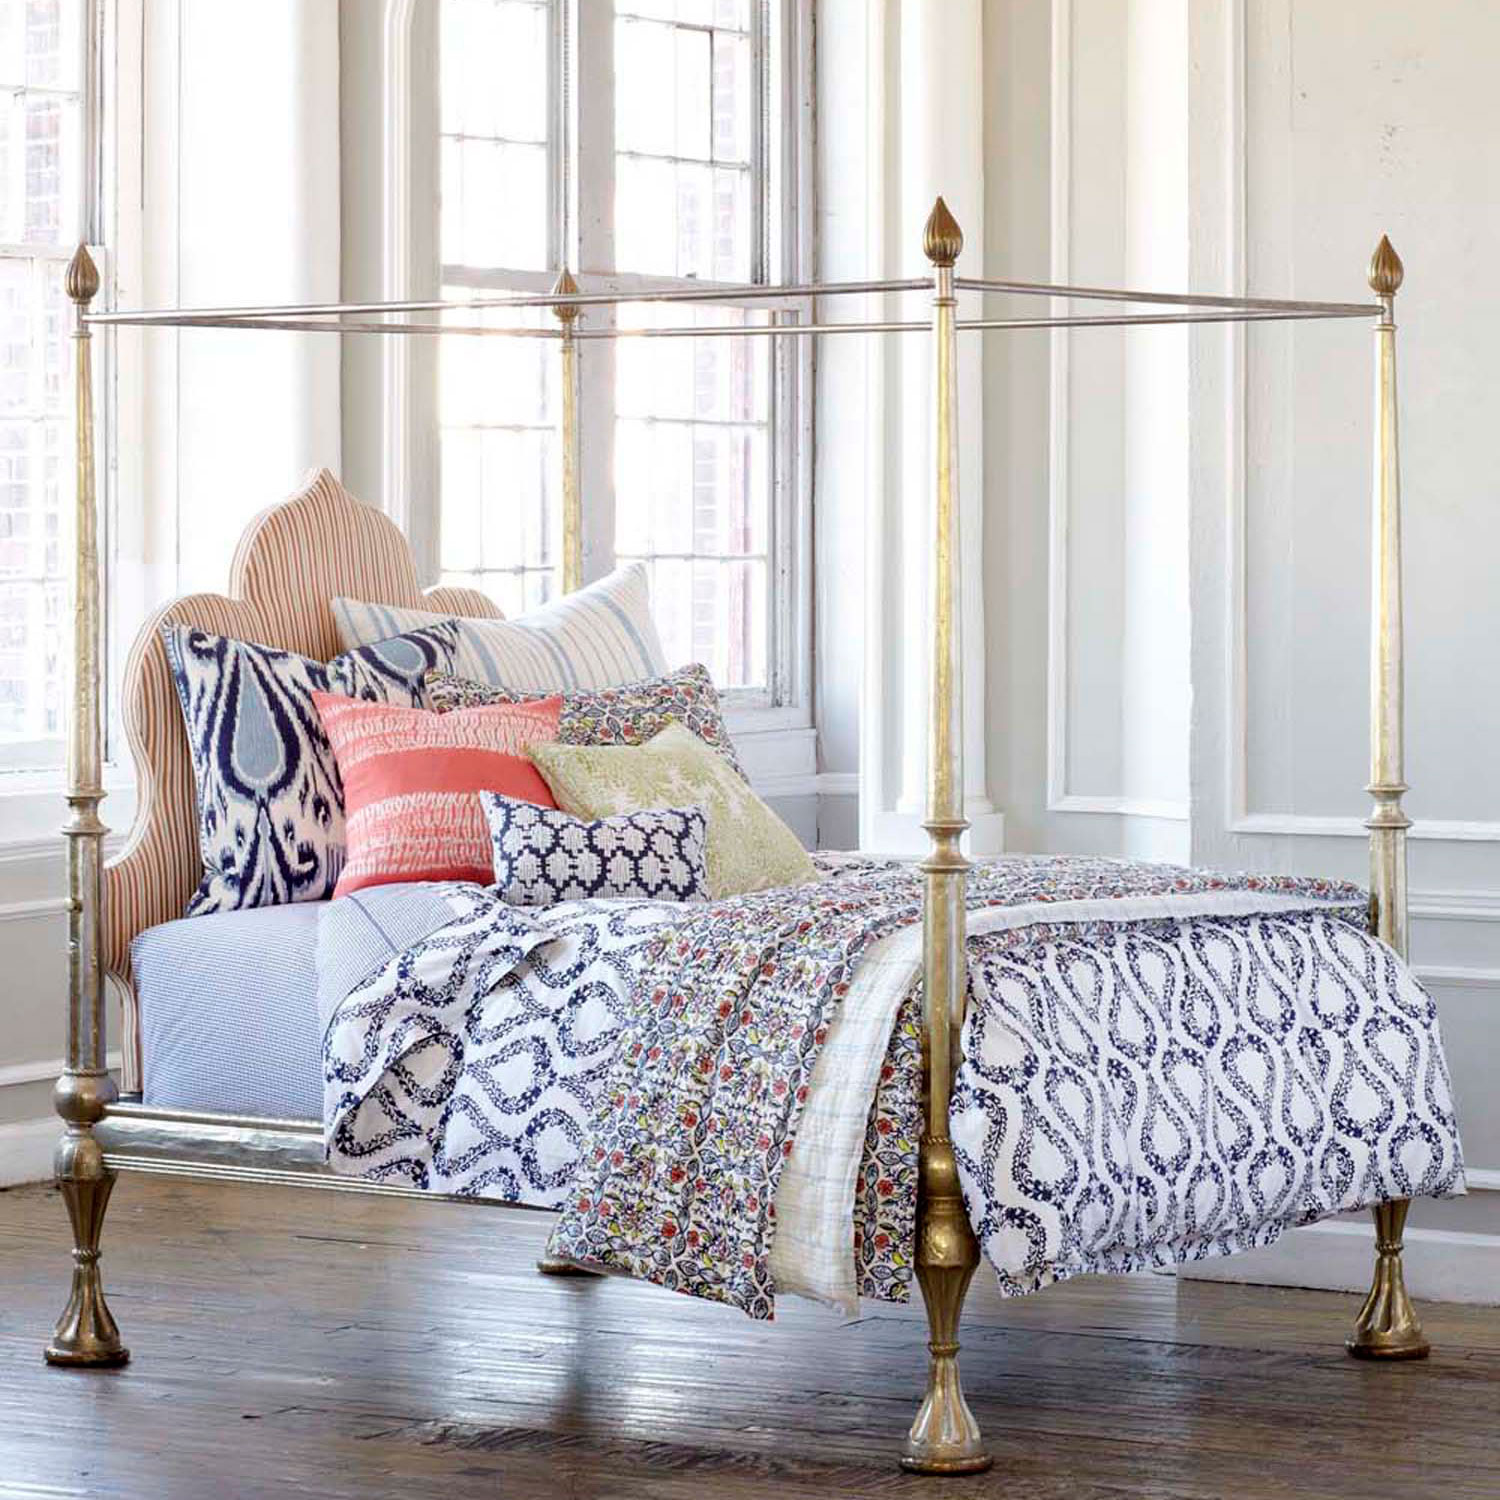 Awesome john robshaw bedding for bedroom design with jr by john robshaw bedding